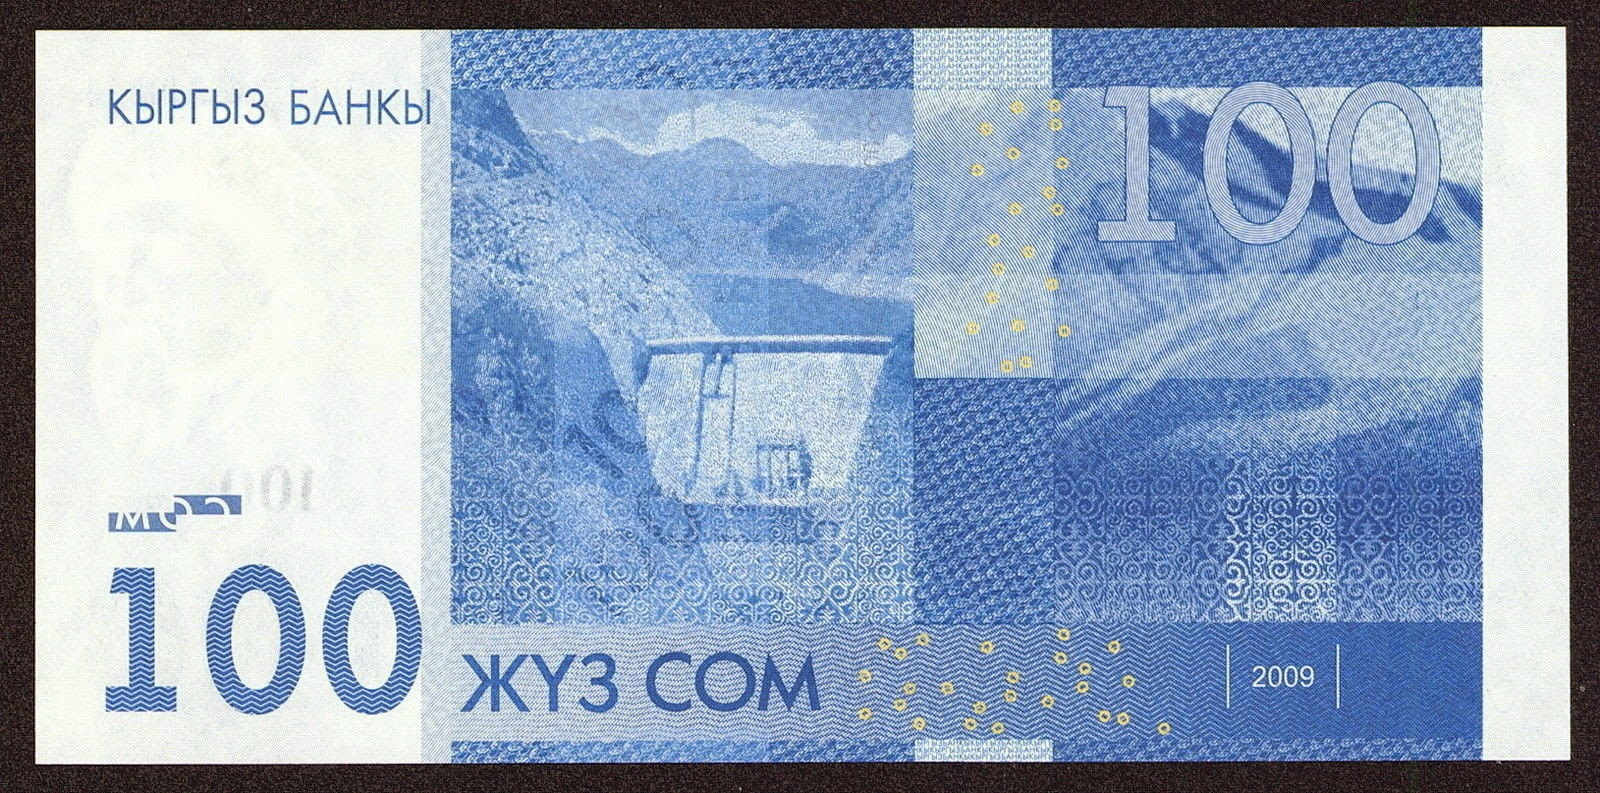 Kyrgyzstan currency 100 Som banknote